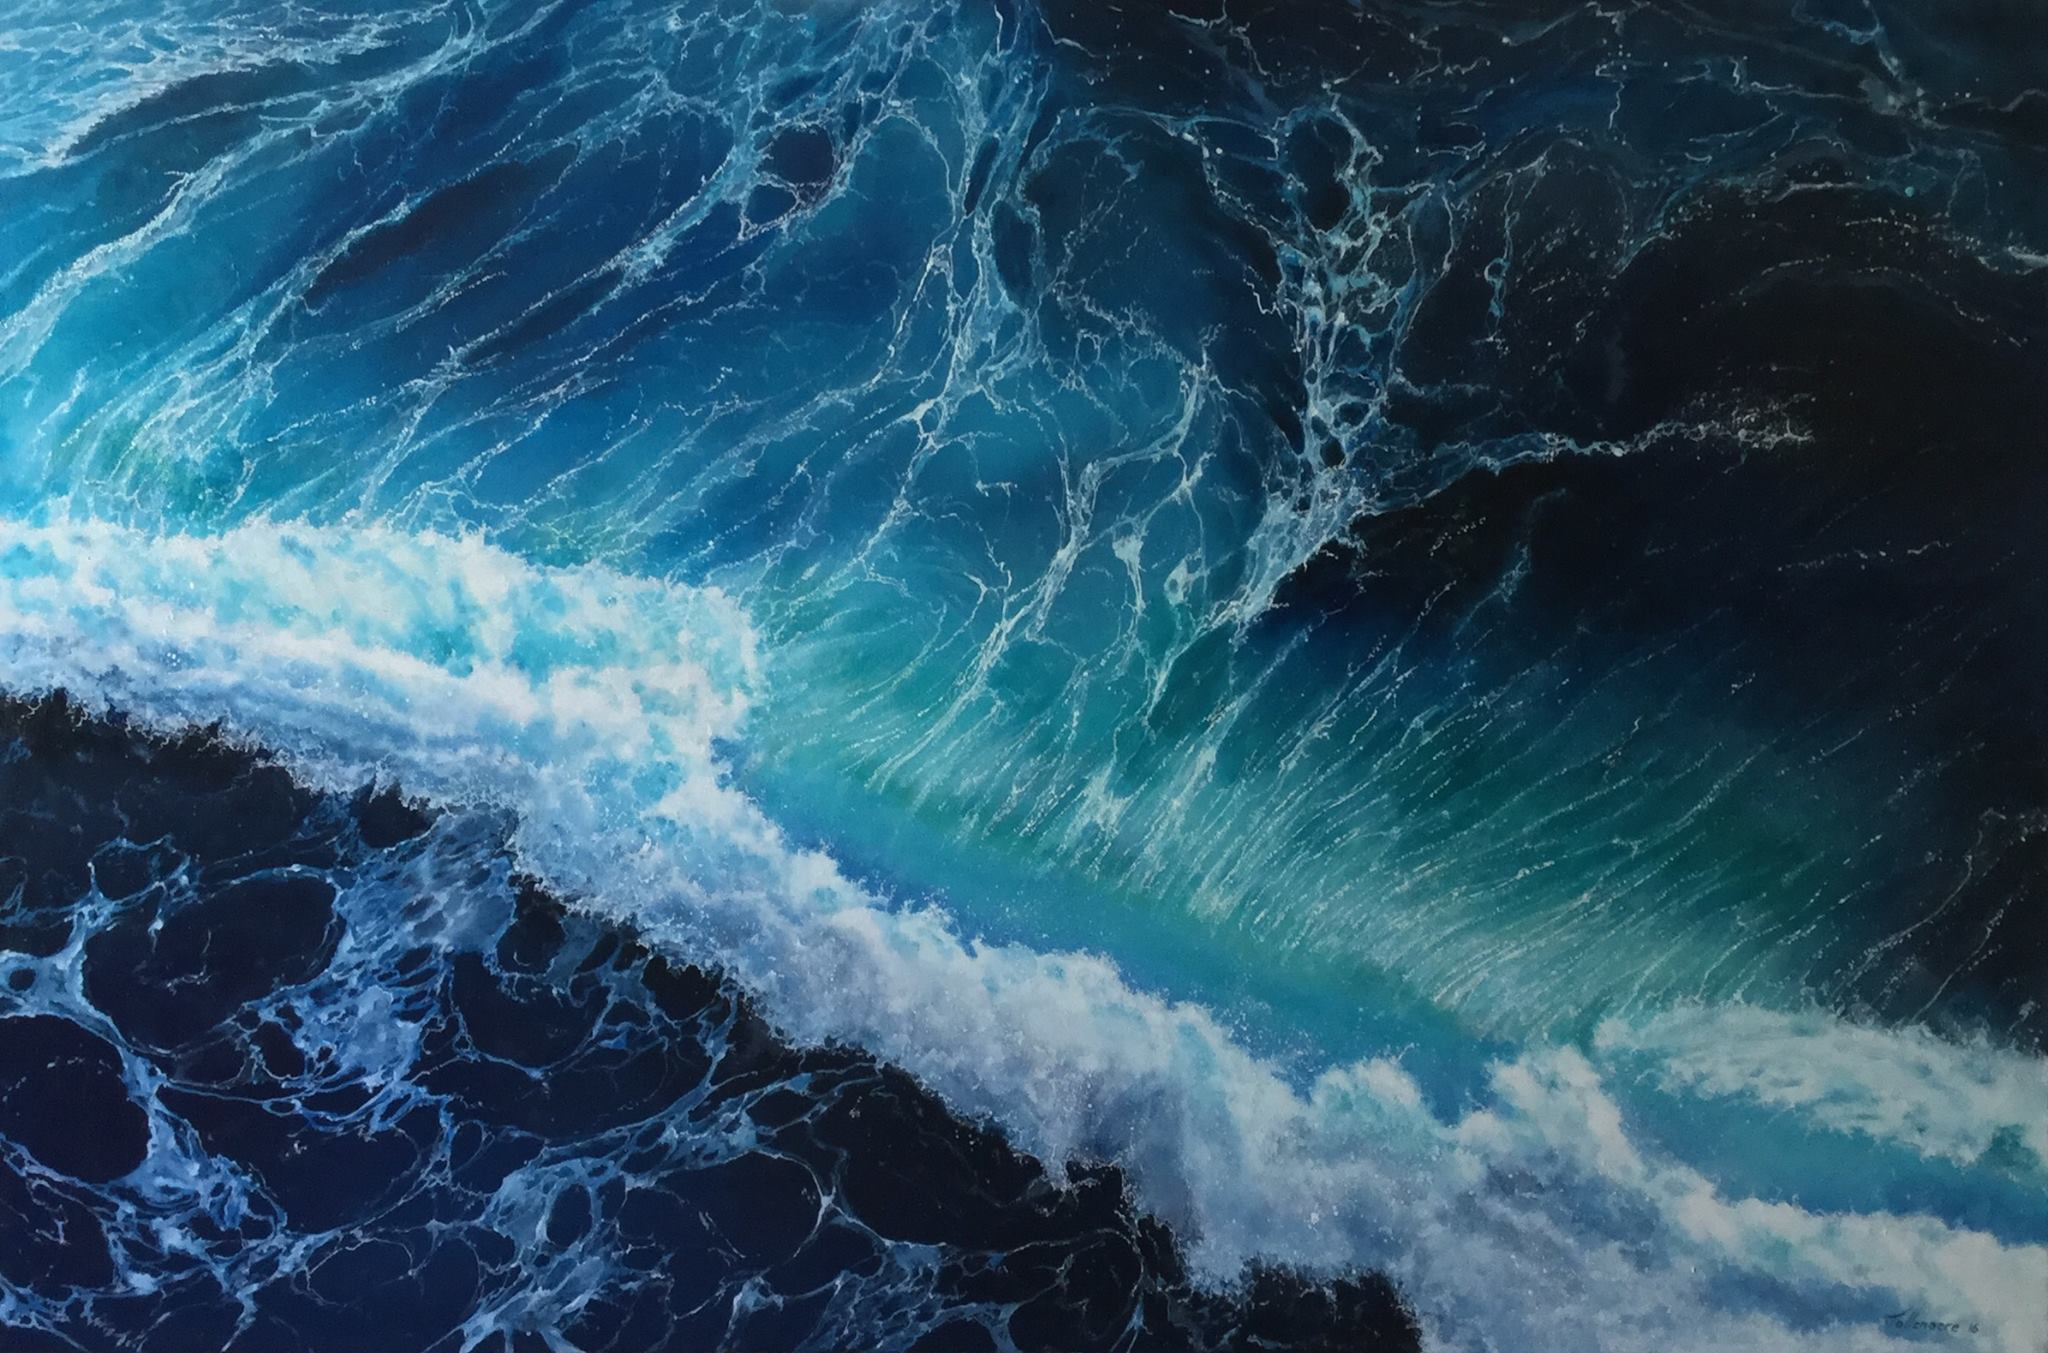 Wave 72. Oil on Canvas. Photo courtesy of Rikki Tollenaere.